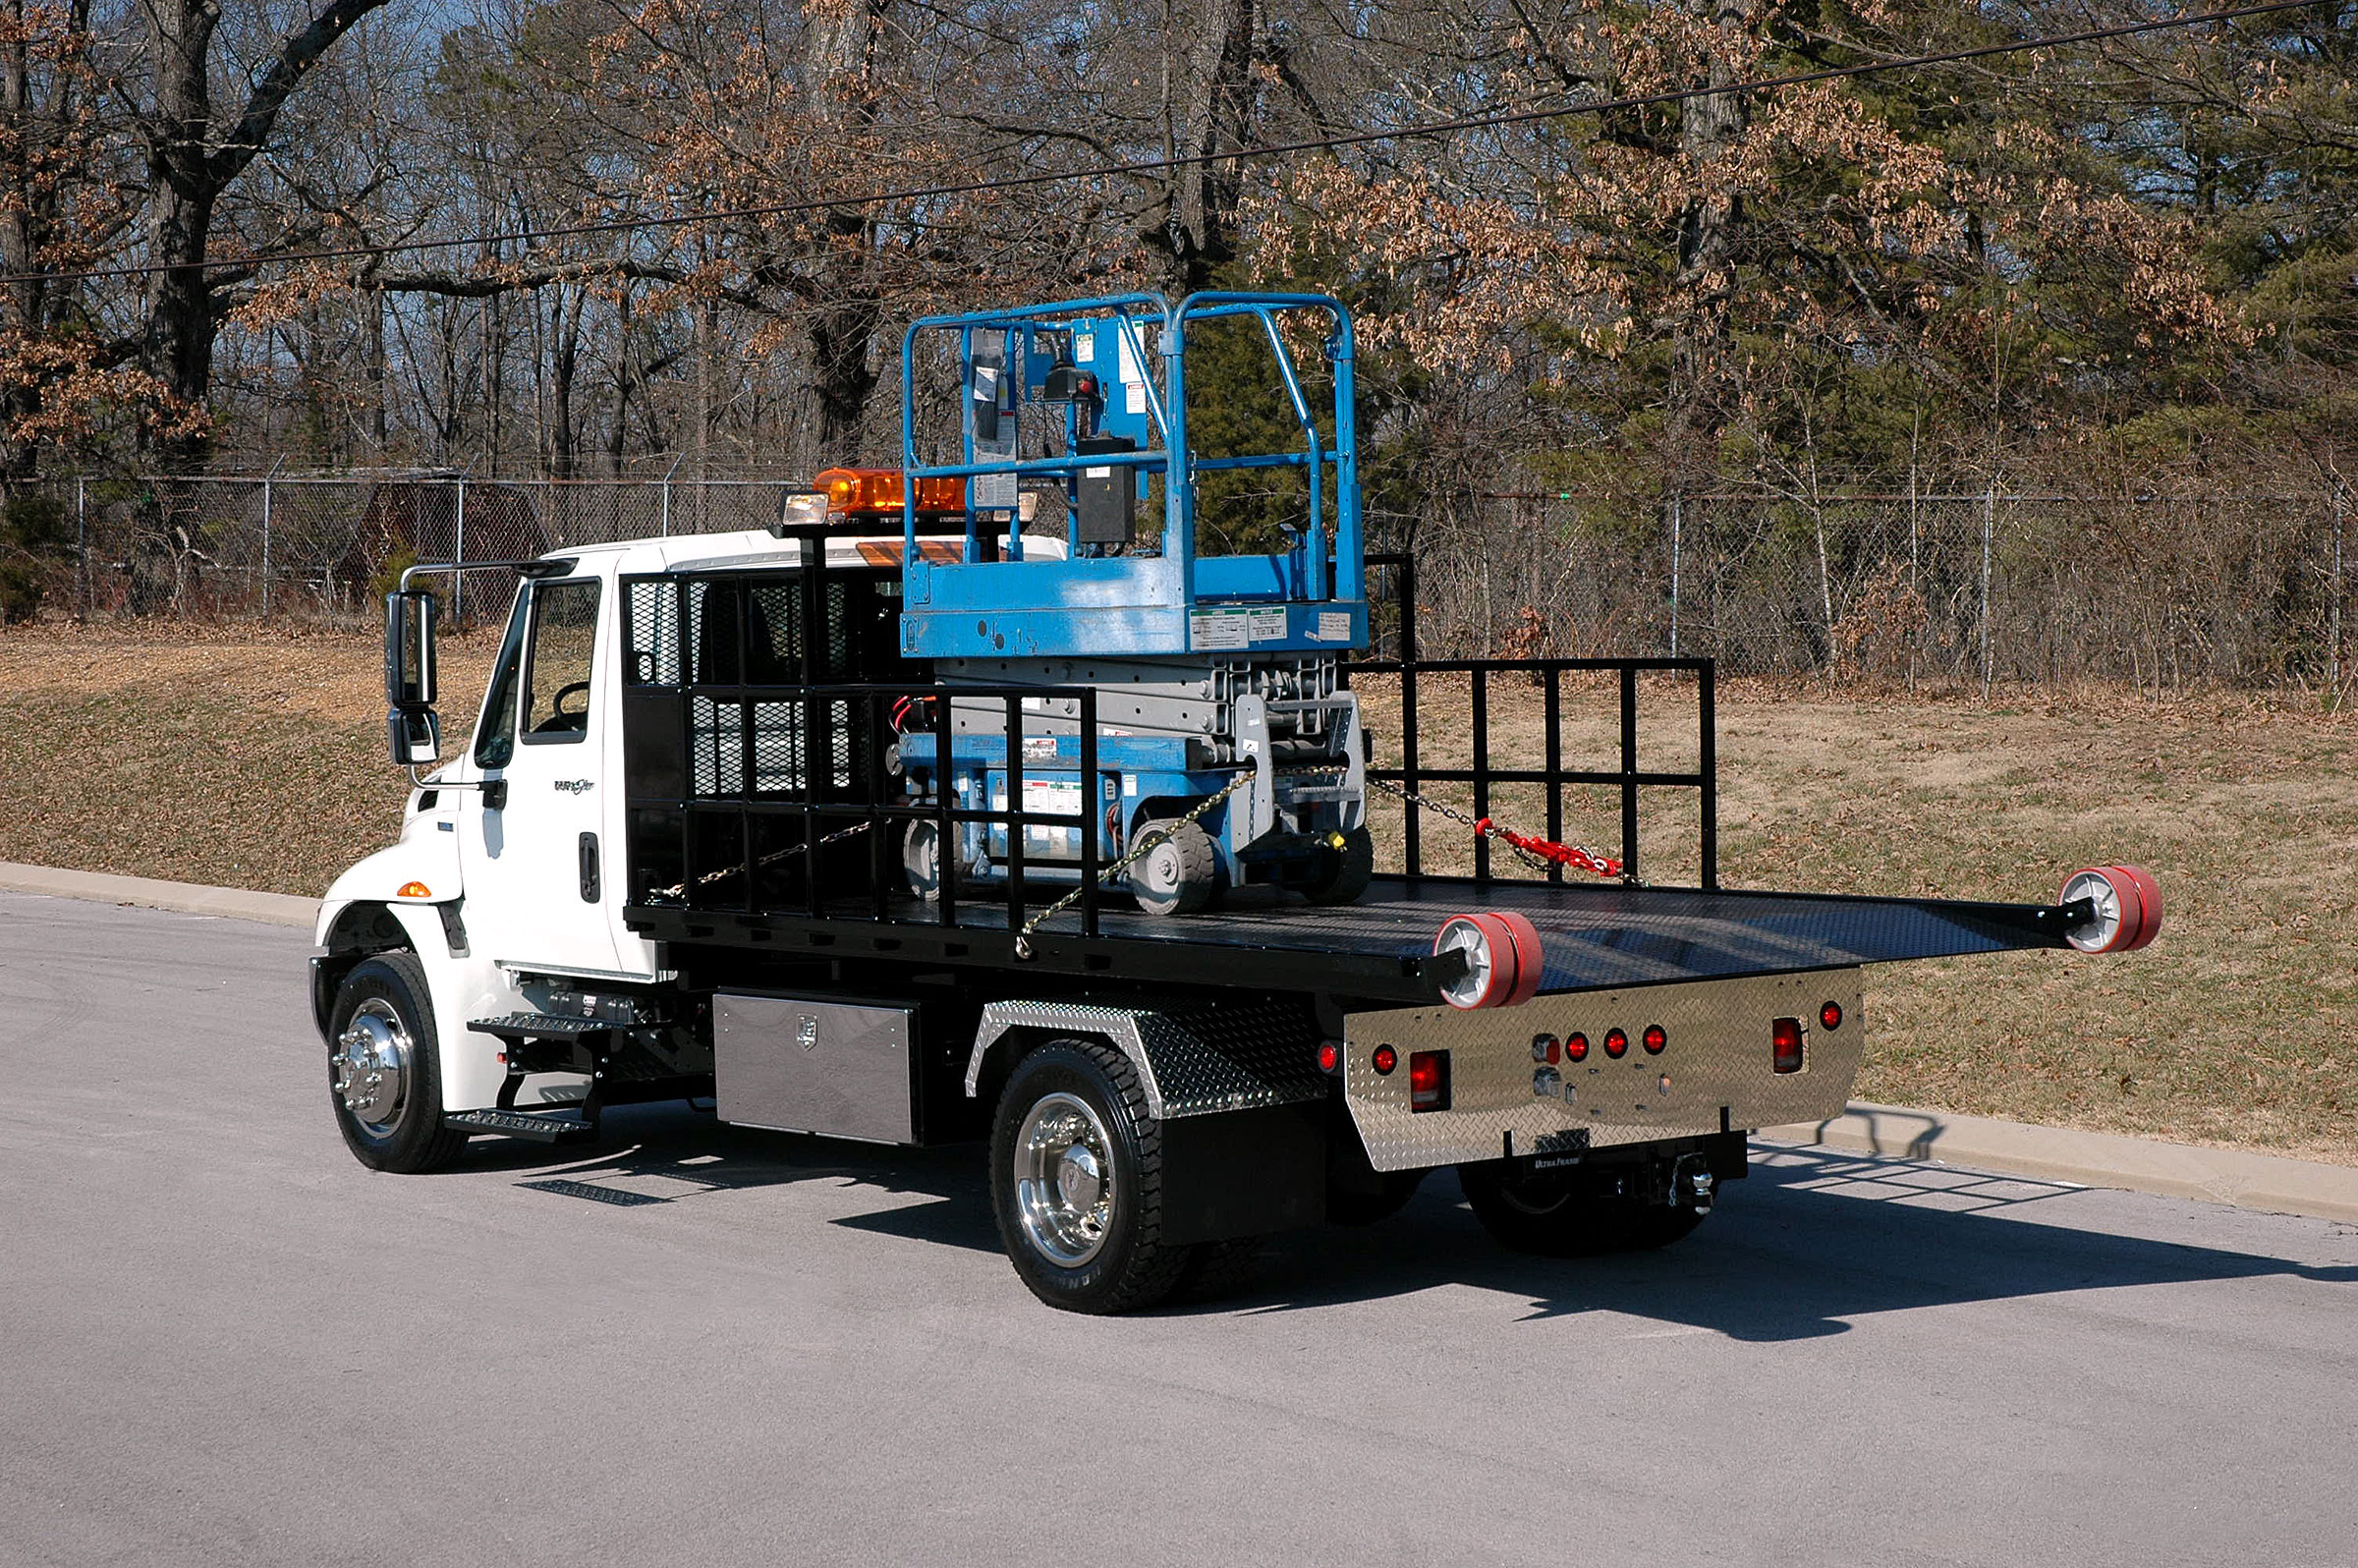 Titan® C-Series low deck height allows towing of taller loads